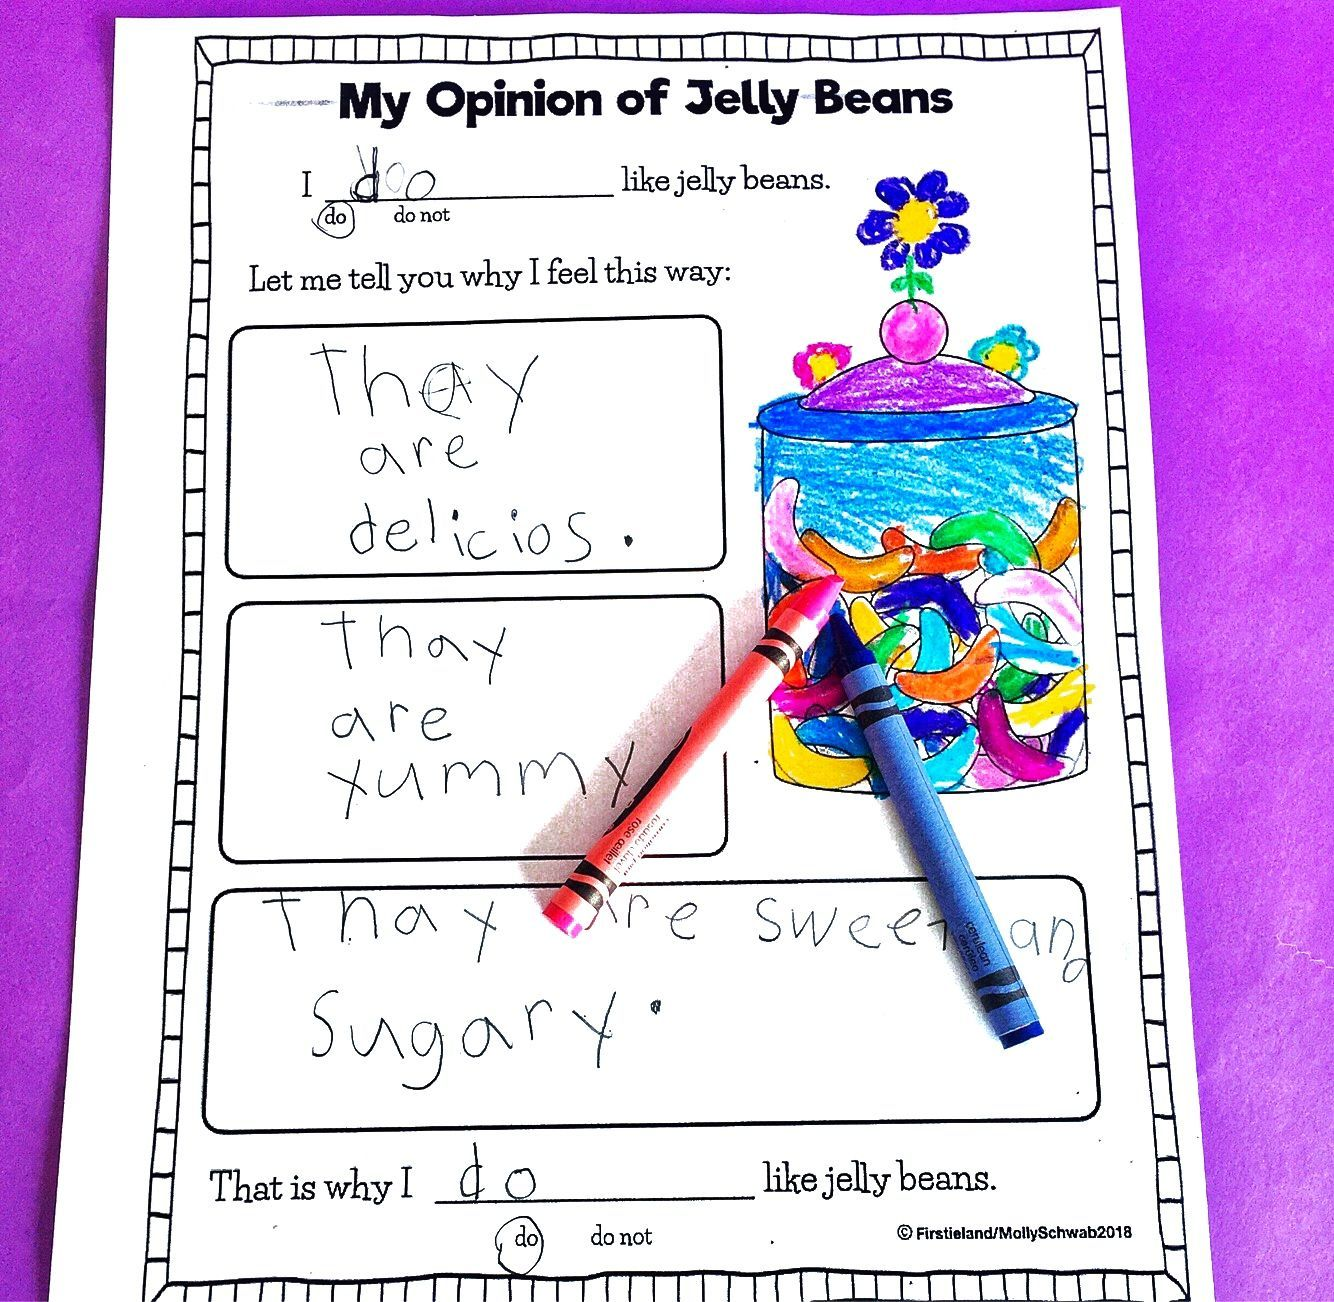 First Grade Students Will Love This Opinion Writing Prompt